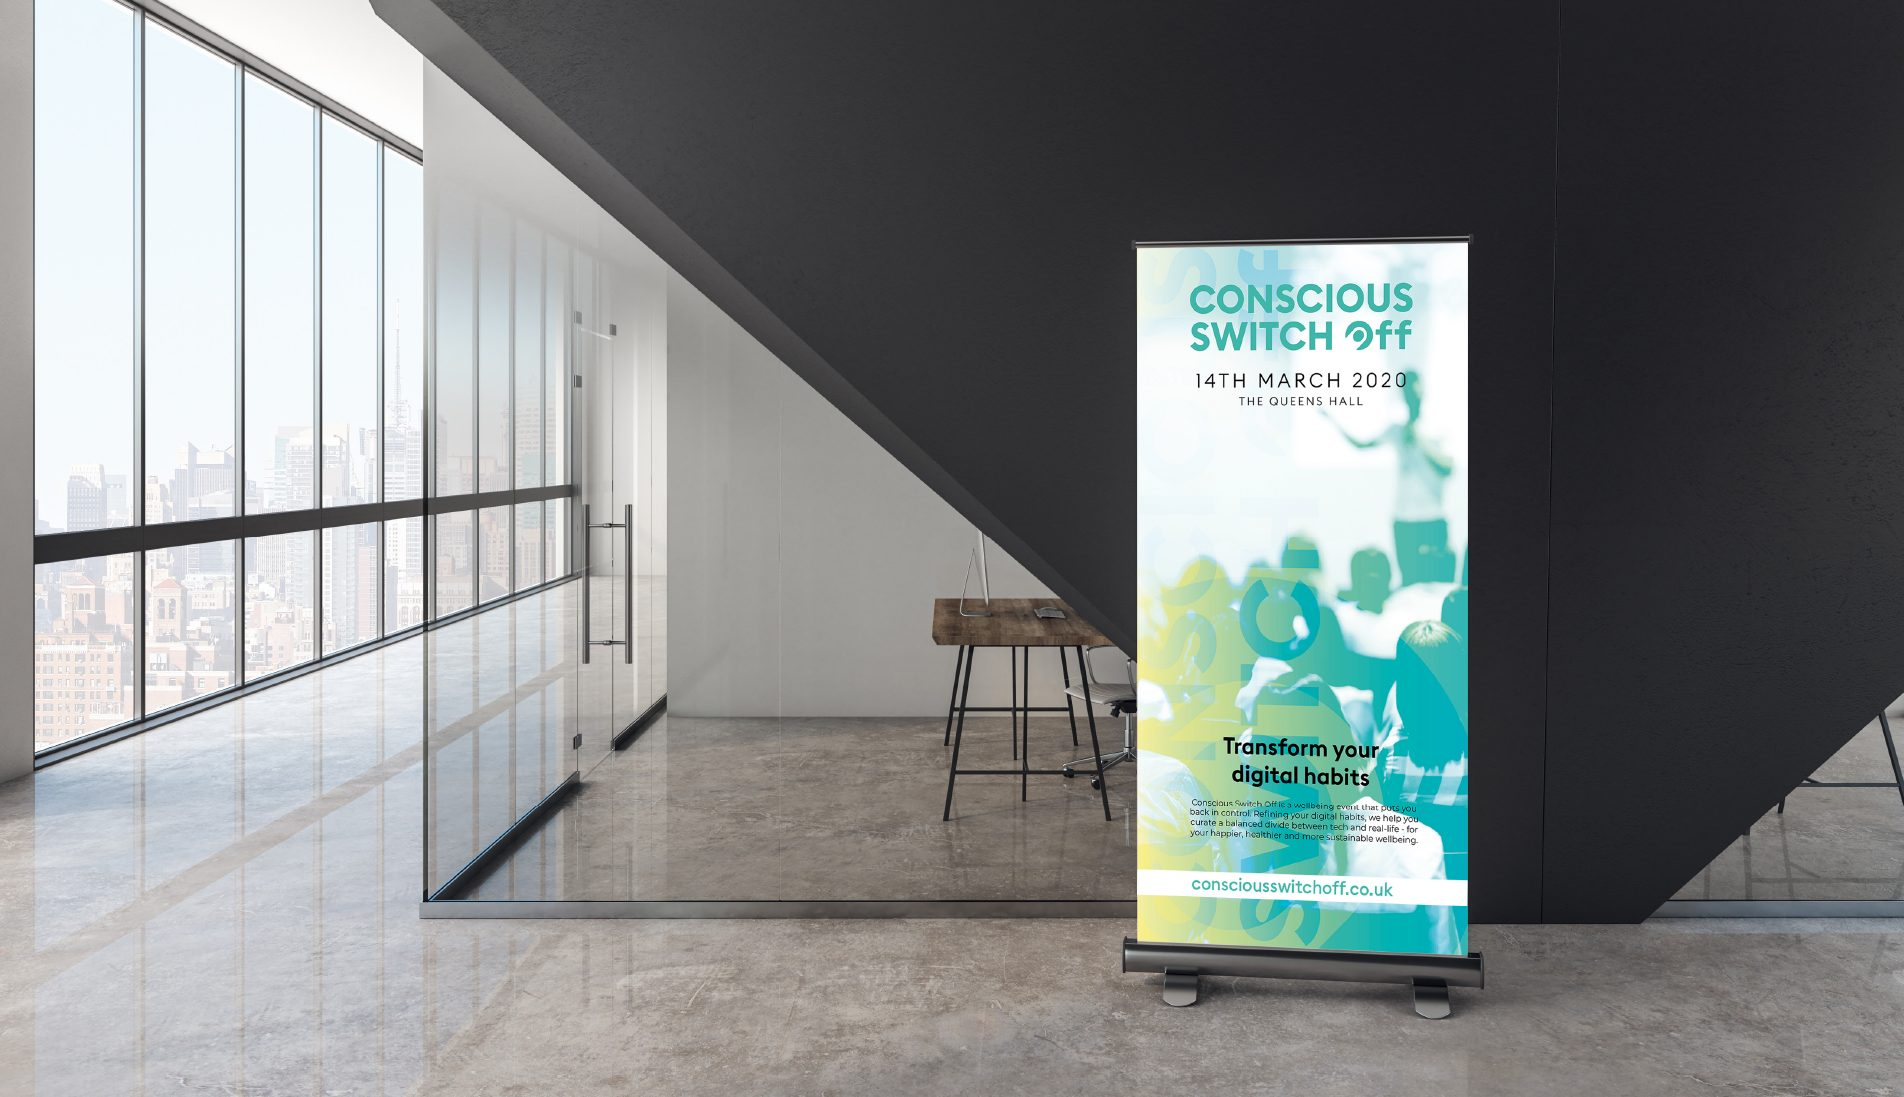 A promotional banner outside an event